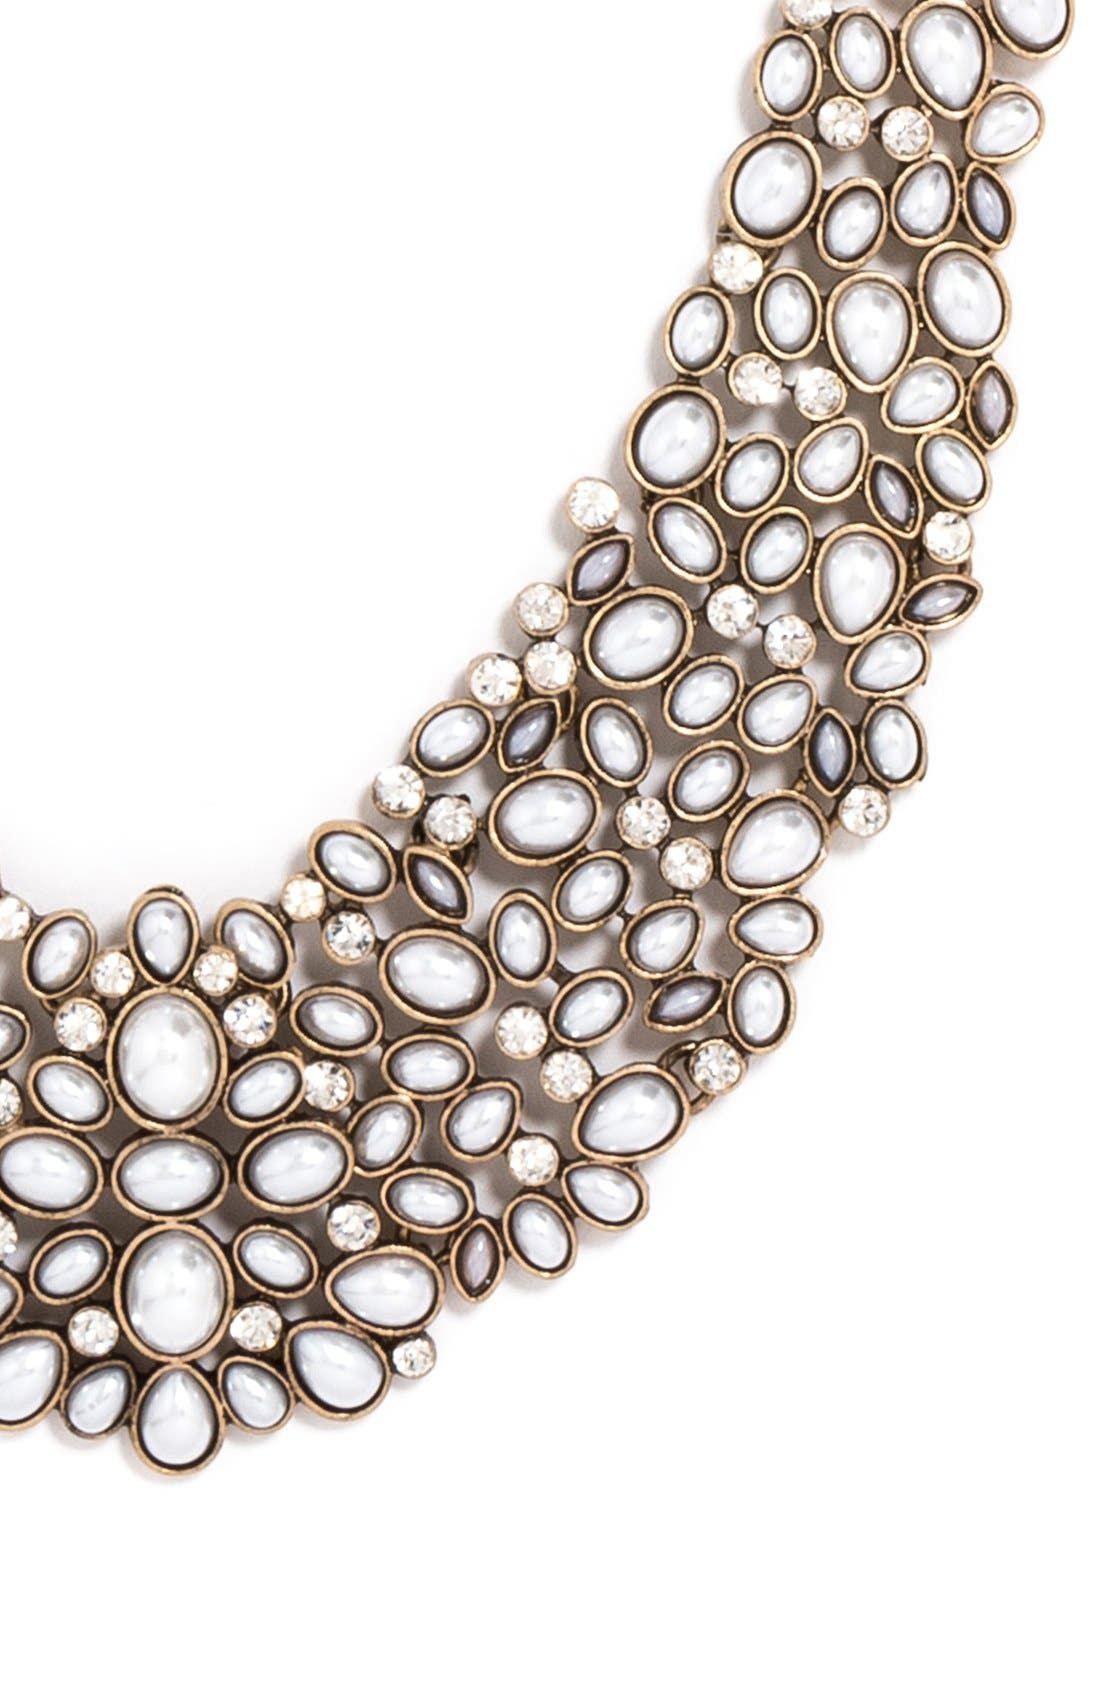 'Kew' Crystal Collar Necklace,                             Alternate thumbnail 6, color,                             PEARL/ GOLD